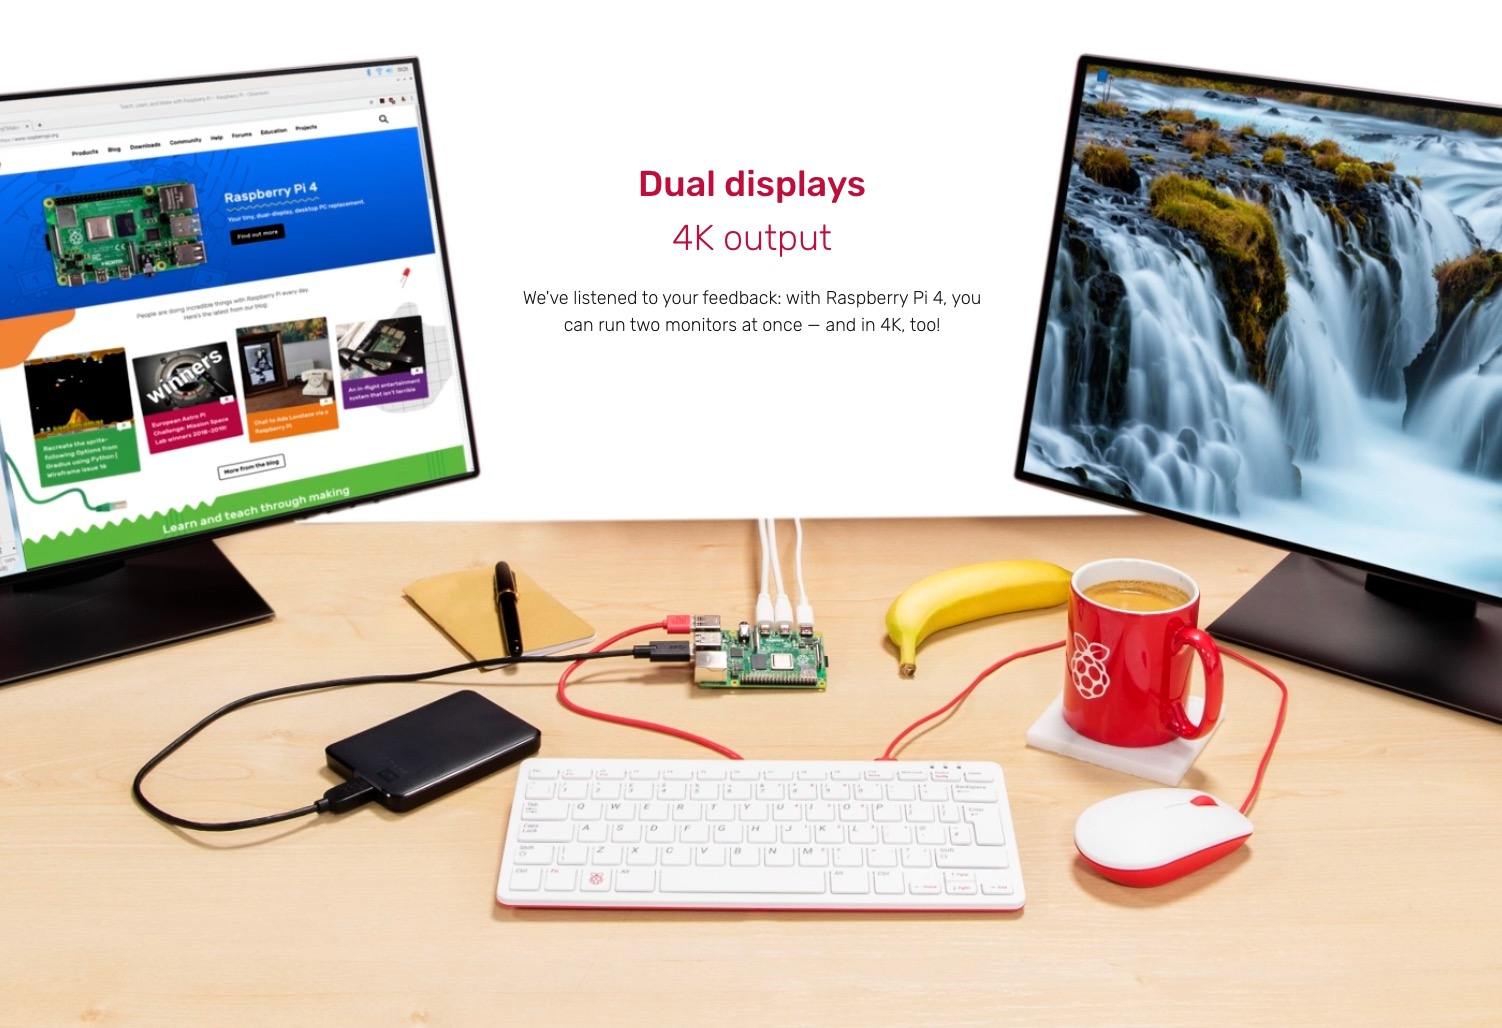 dual-display-raspberrypi-4